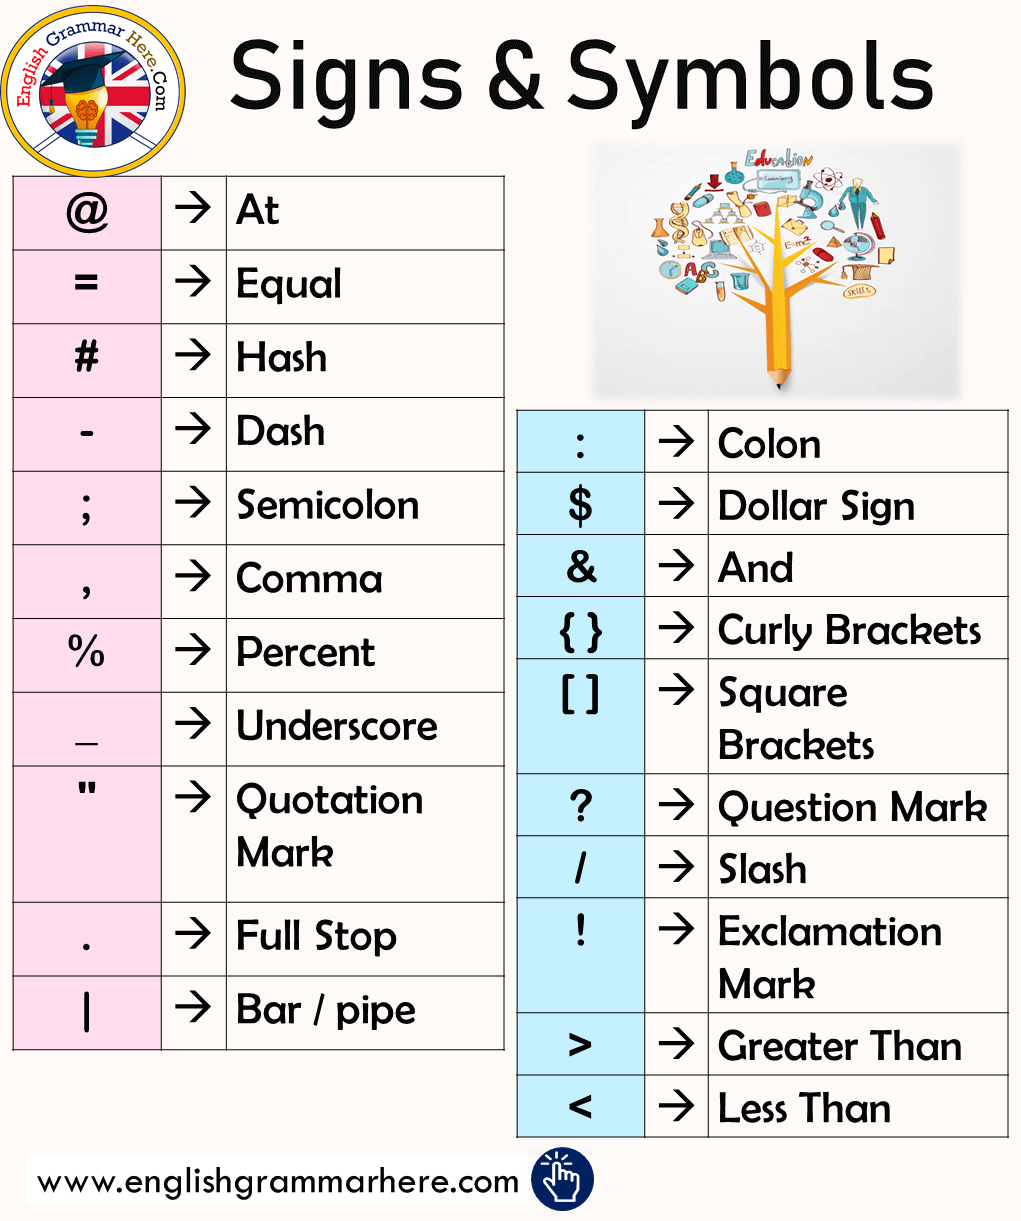 English Signs & Symbols List